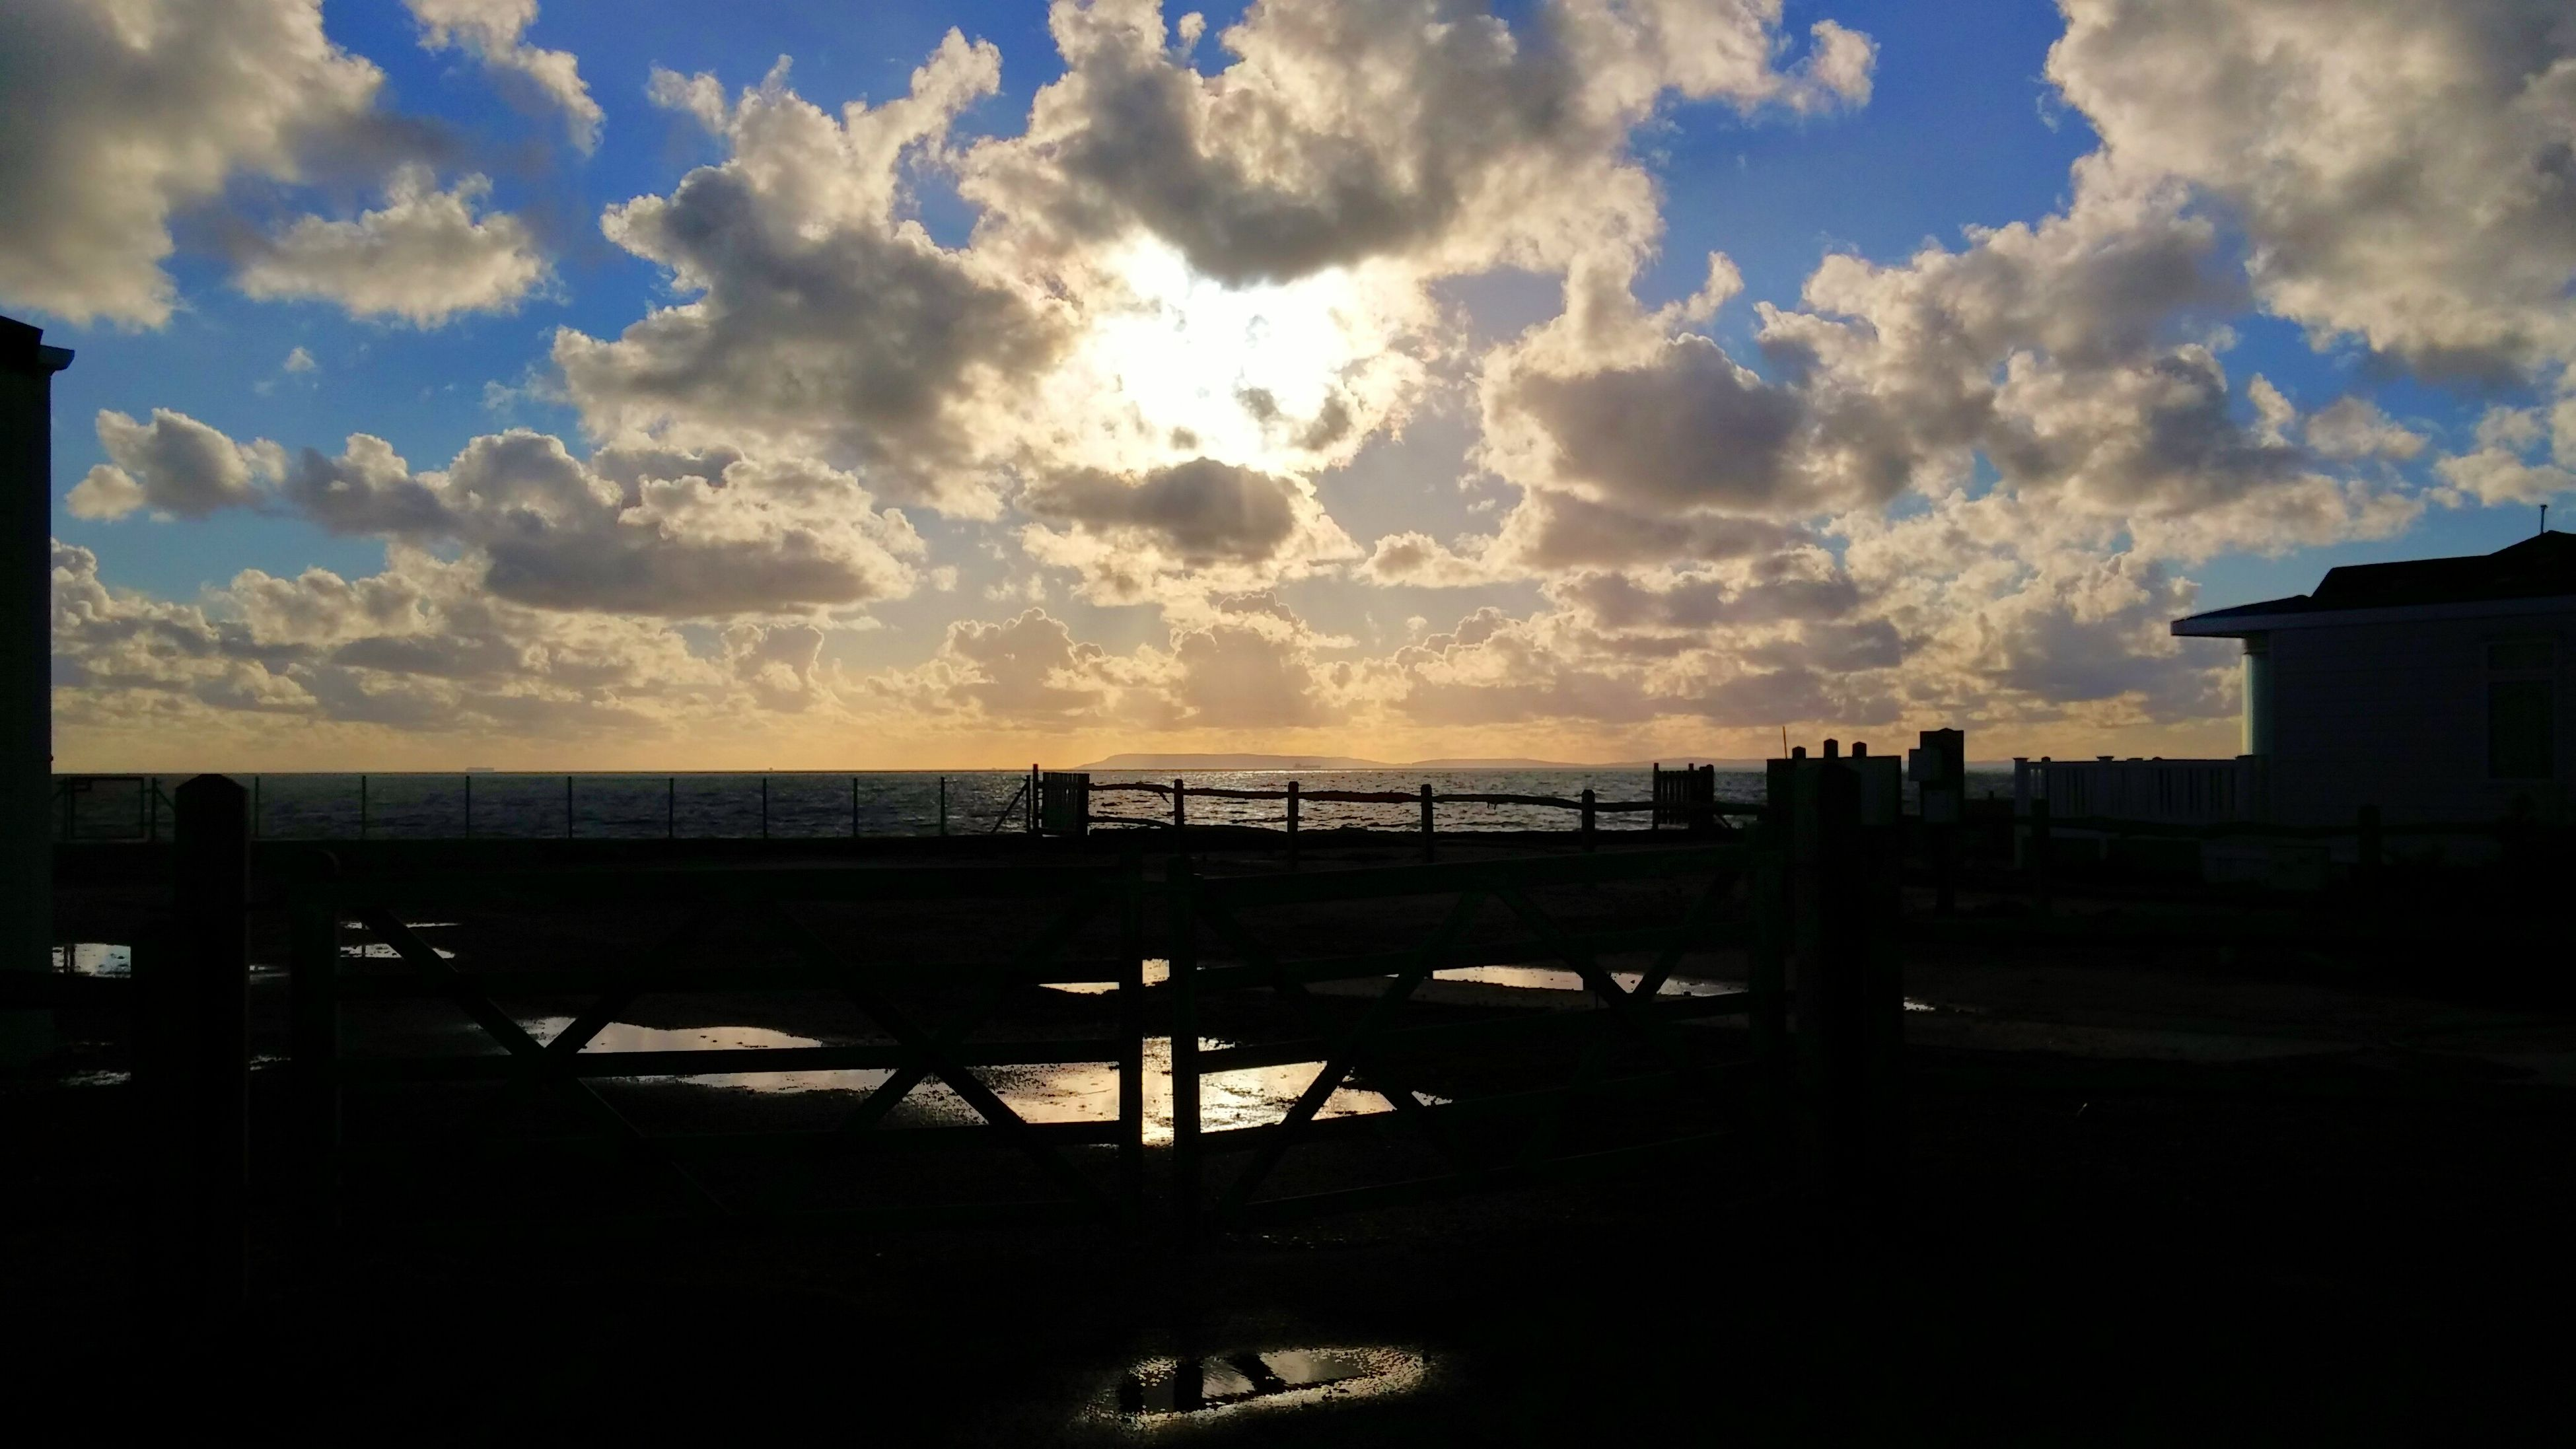 sky, sea, cloud - sky, water, horizon over water, sunset, beach, silhouette, tranquil scene, scenics, tranquility, beauty in nature, cloud, nature, idyllic, cloudy, shore, built structure, sunlight, pier